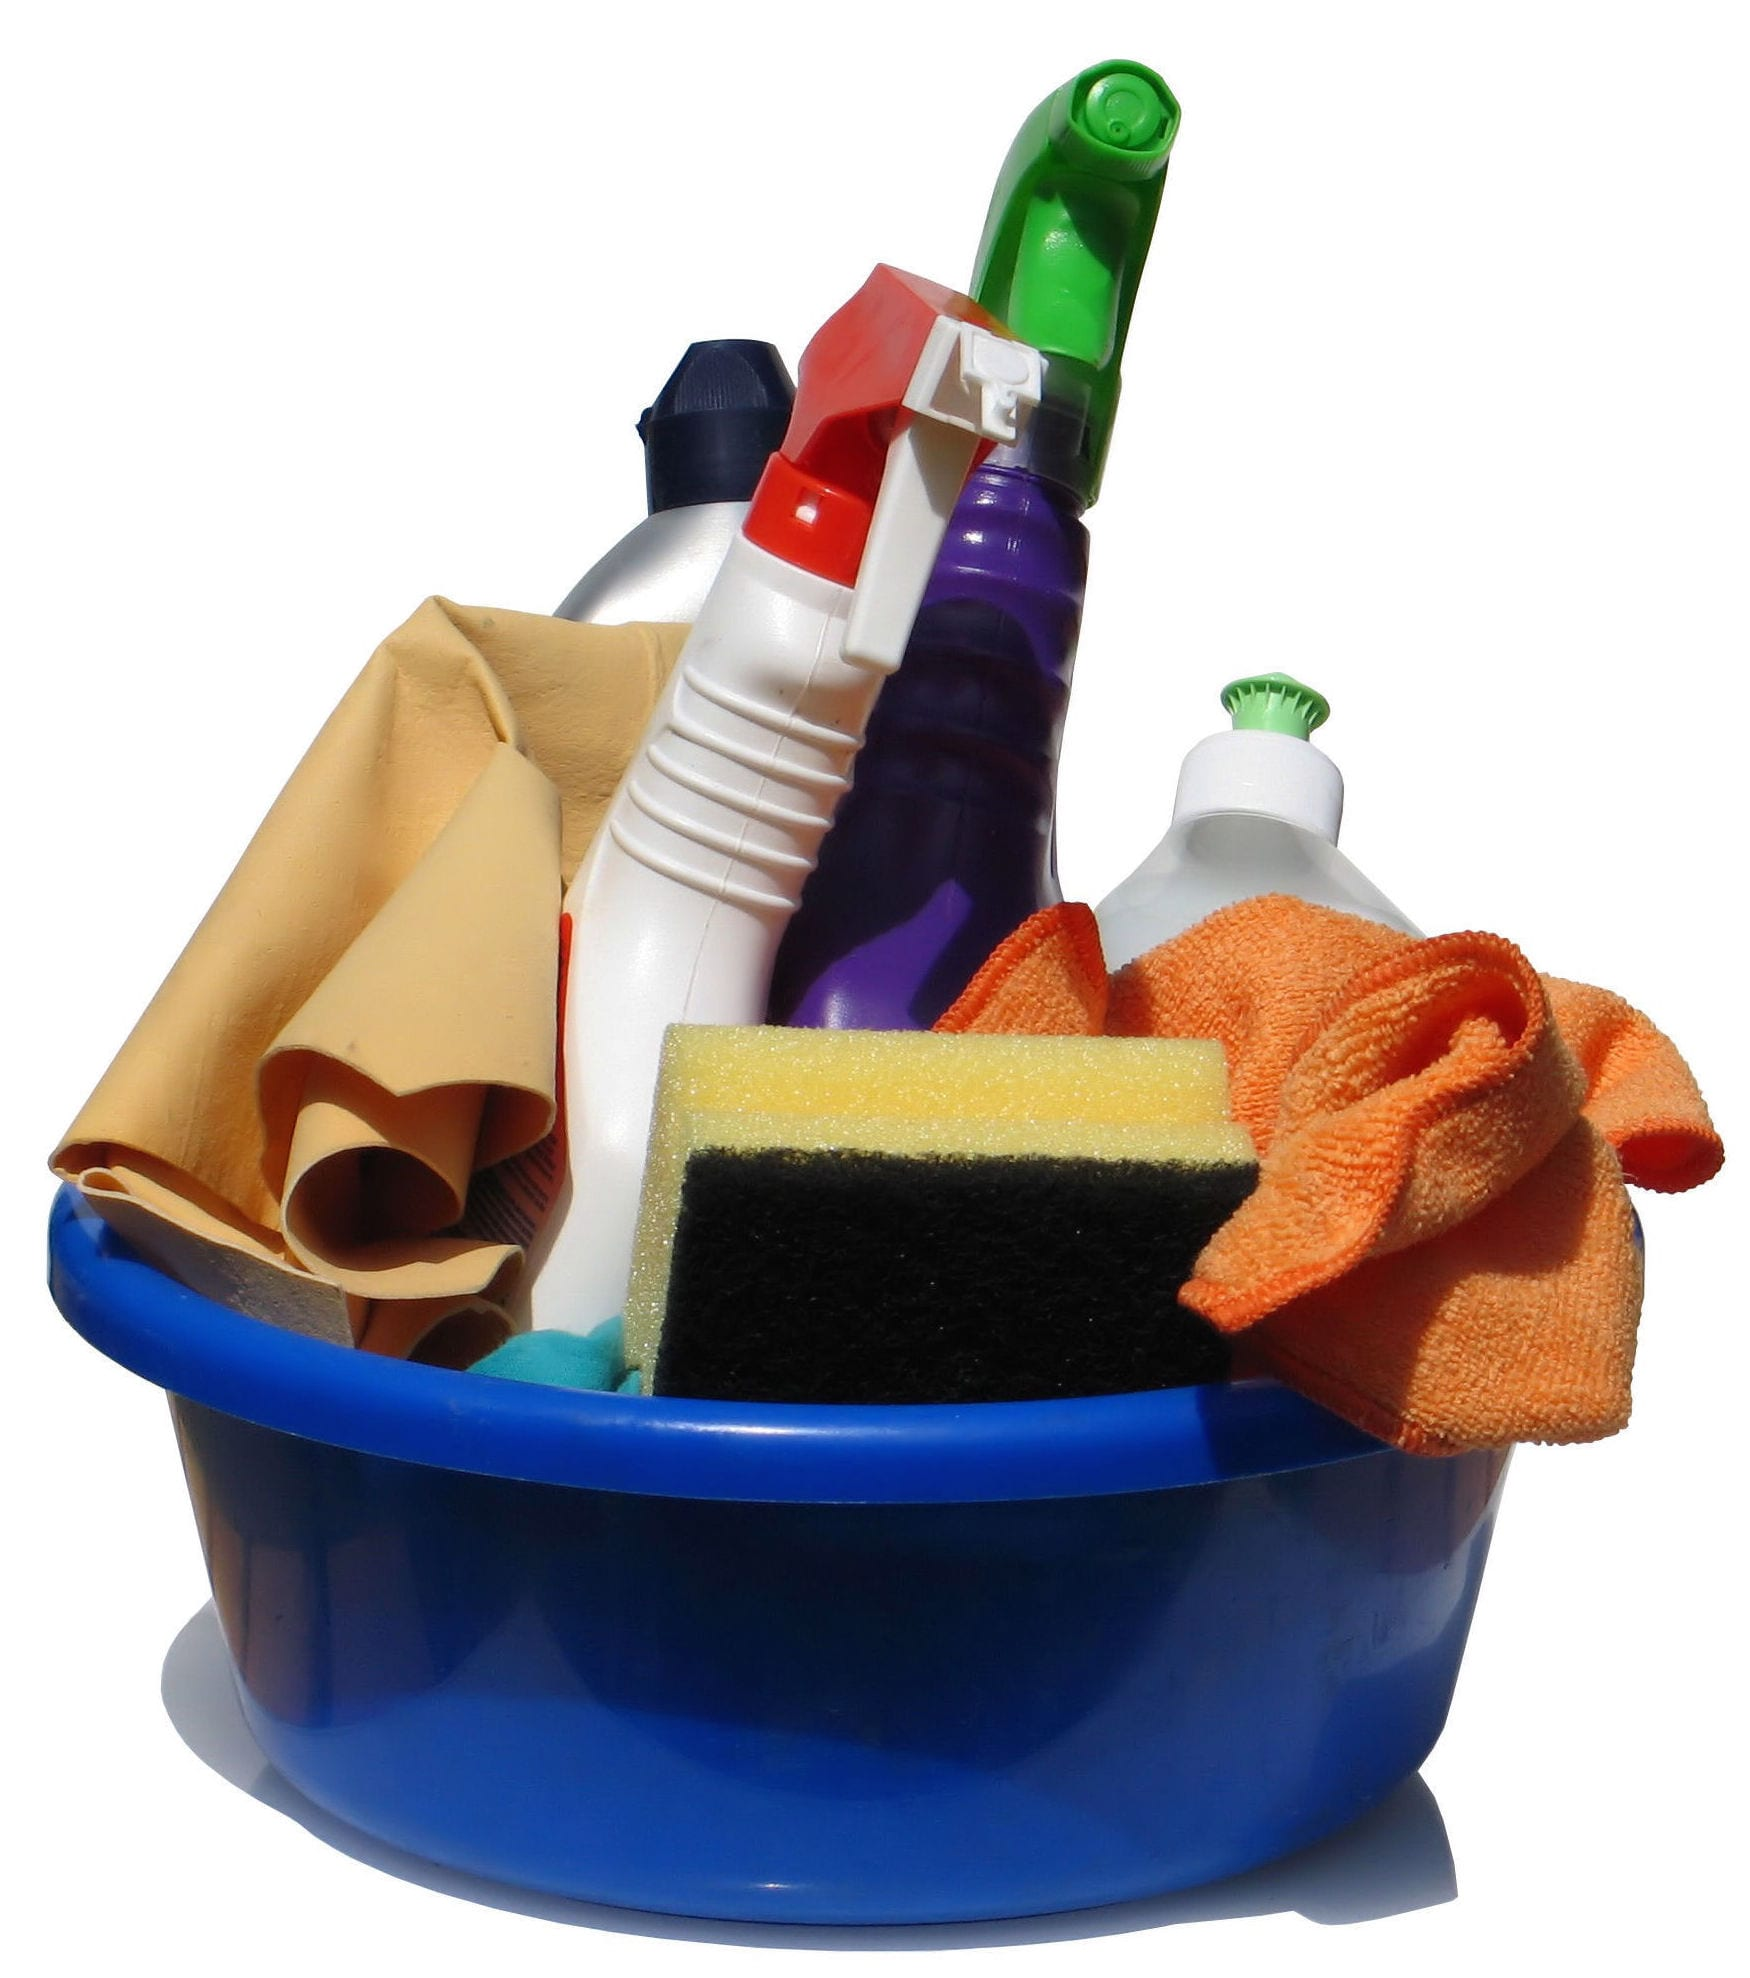 Keep Your House Clean With 1 Chore Per Day